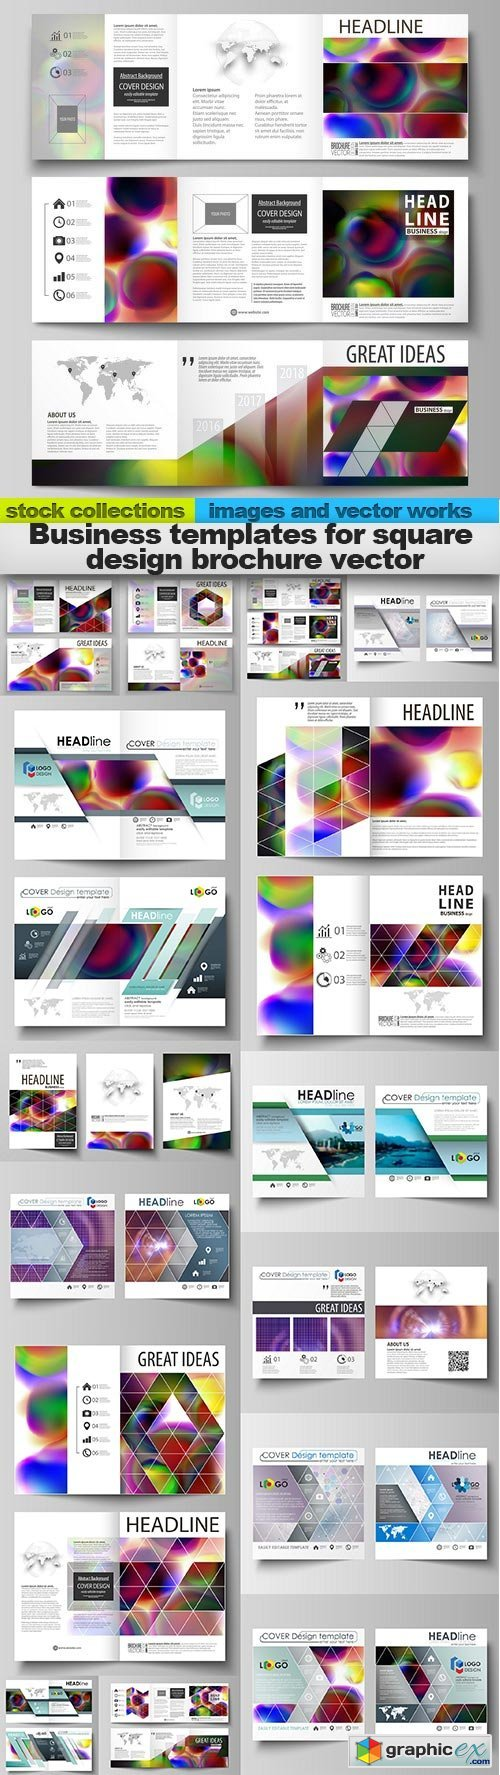 Business templates for square design brochure vector, 15 x EPS